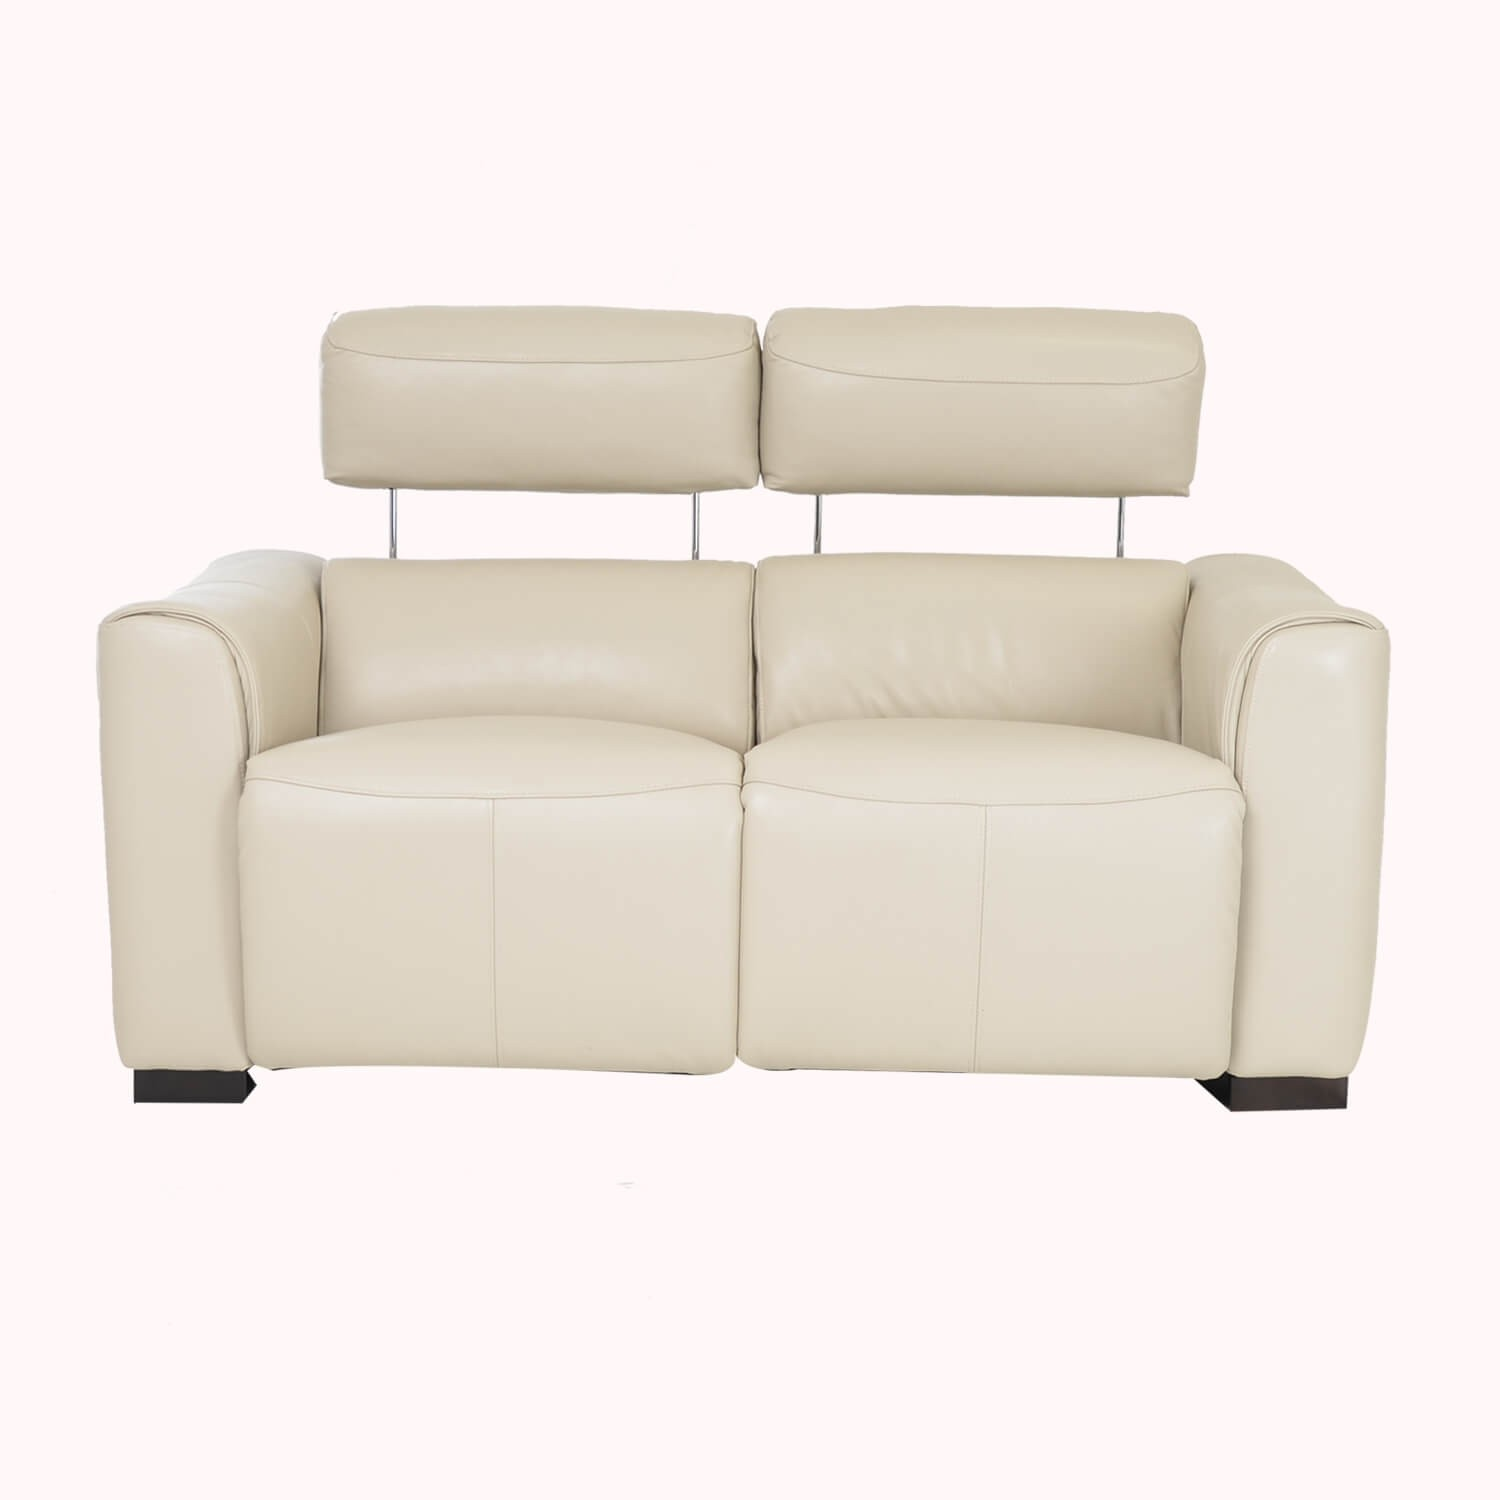 Picture of: Casa Charlie 2 Seater Power Recliner Leather Sofa Beige L